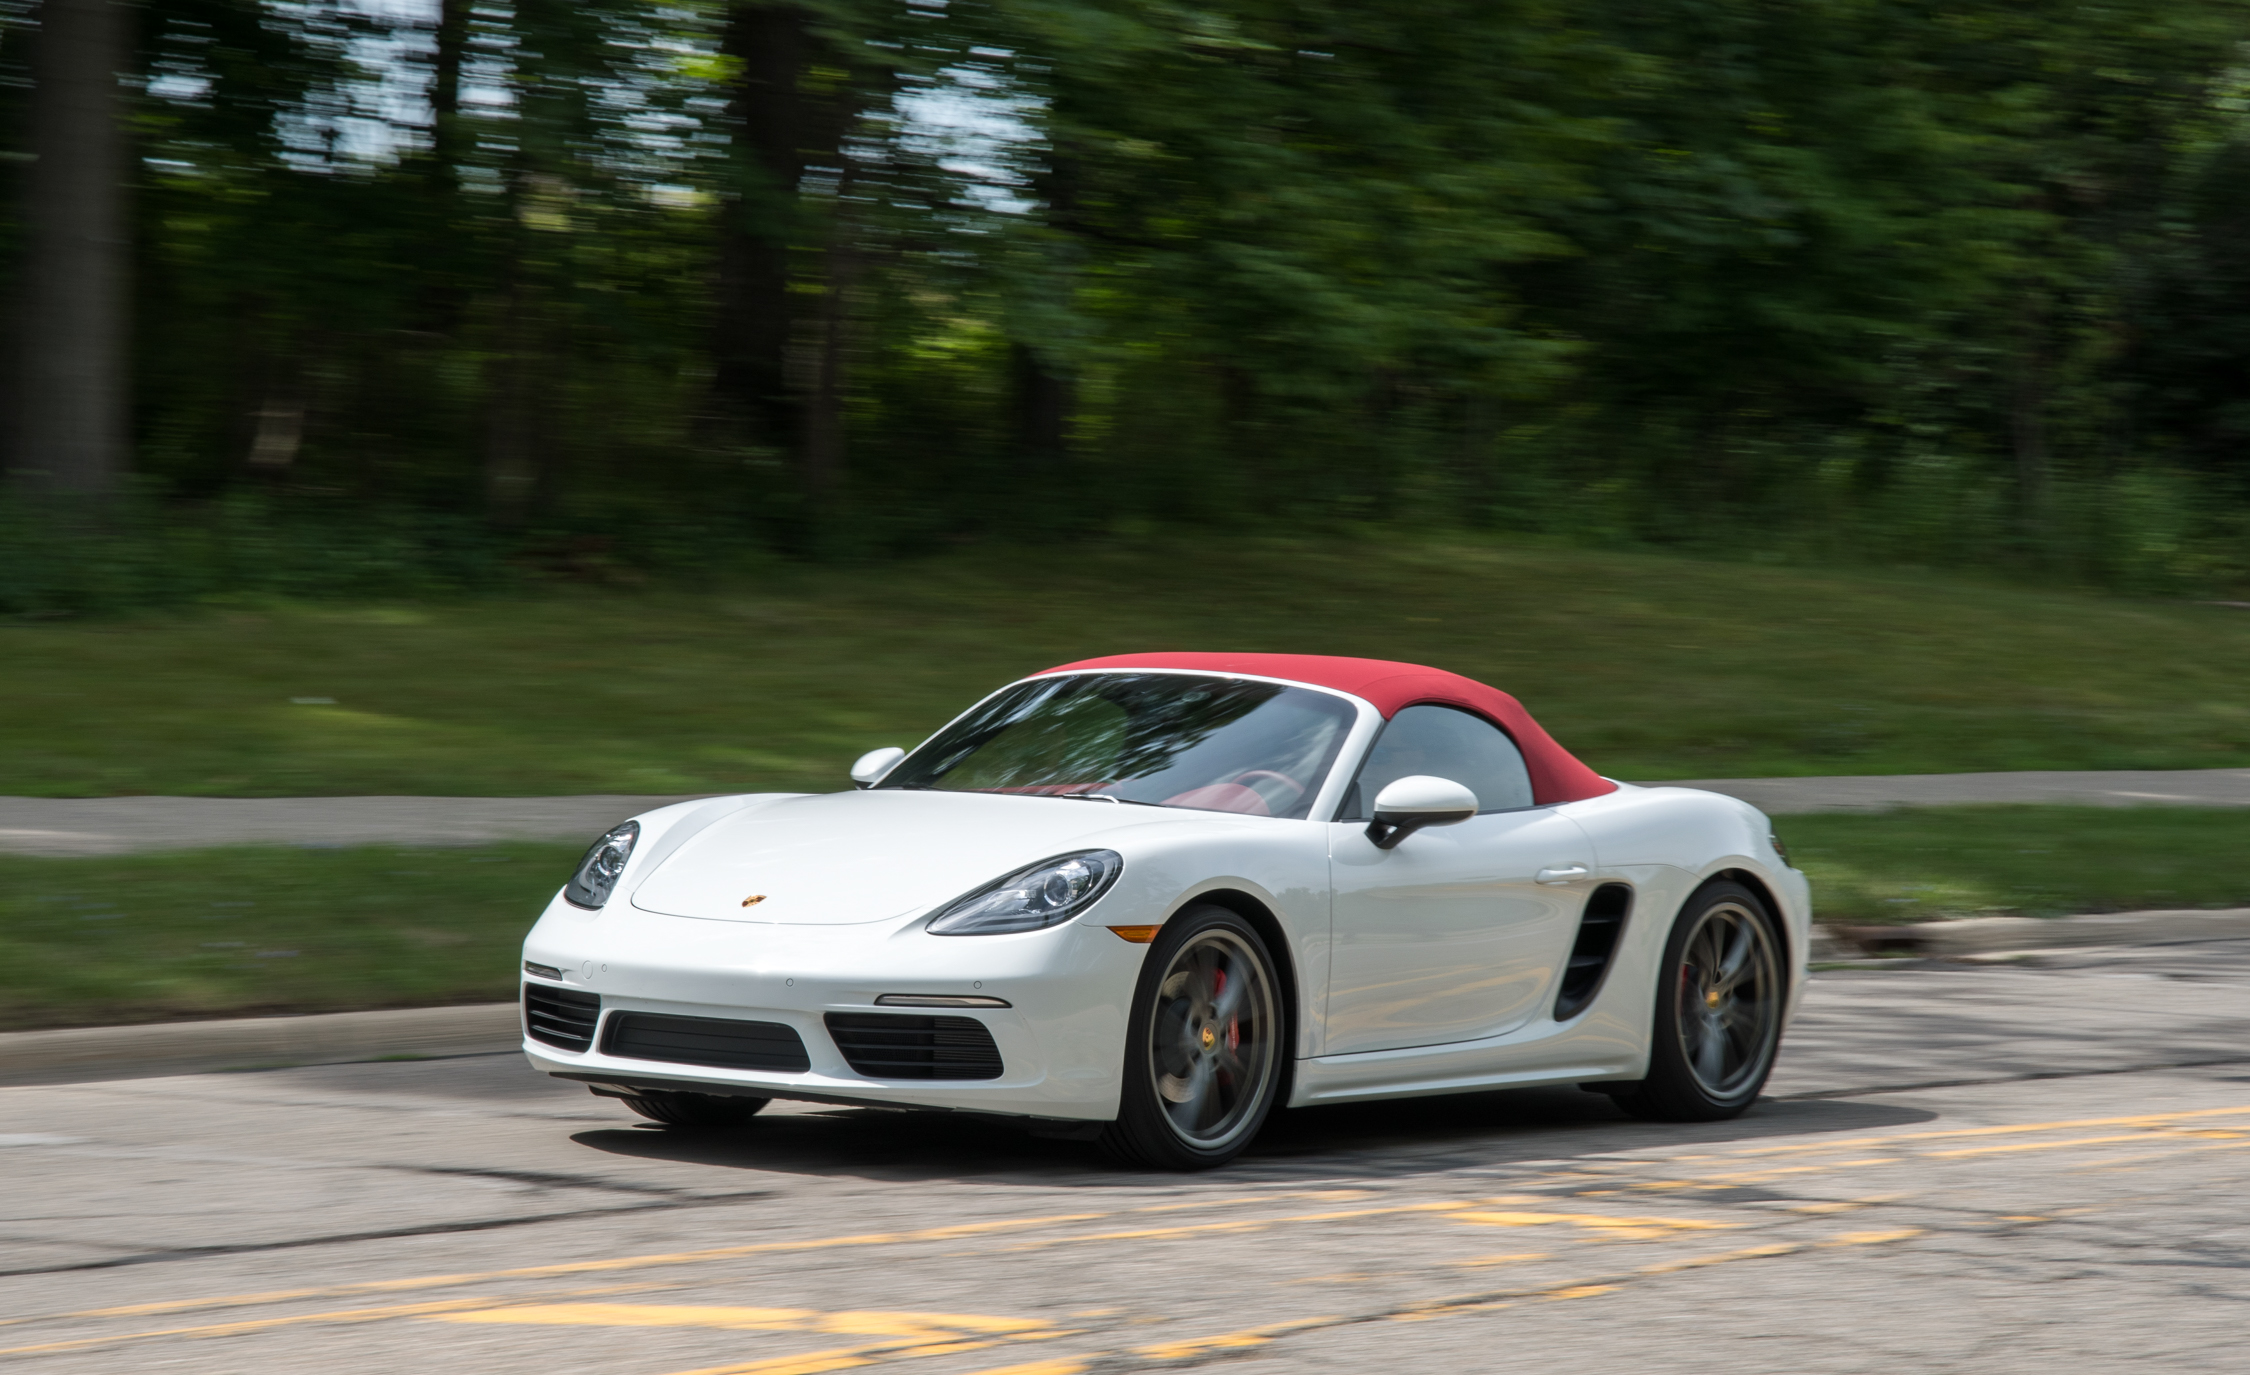 2017 Porsche 718 Boxster (View 71 of 71)